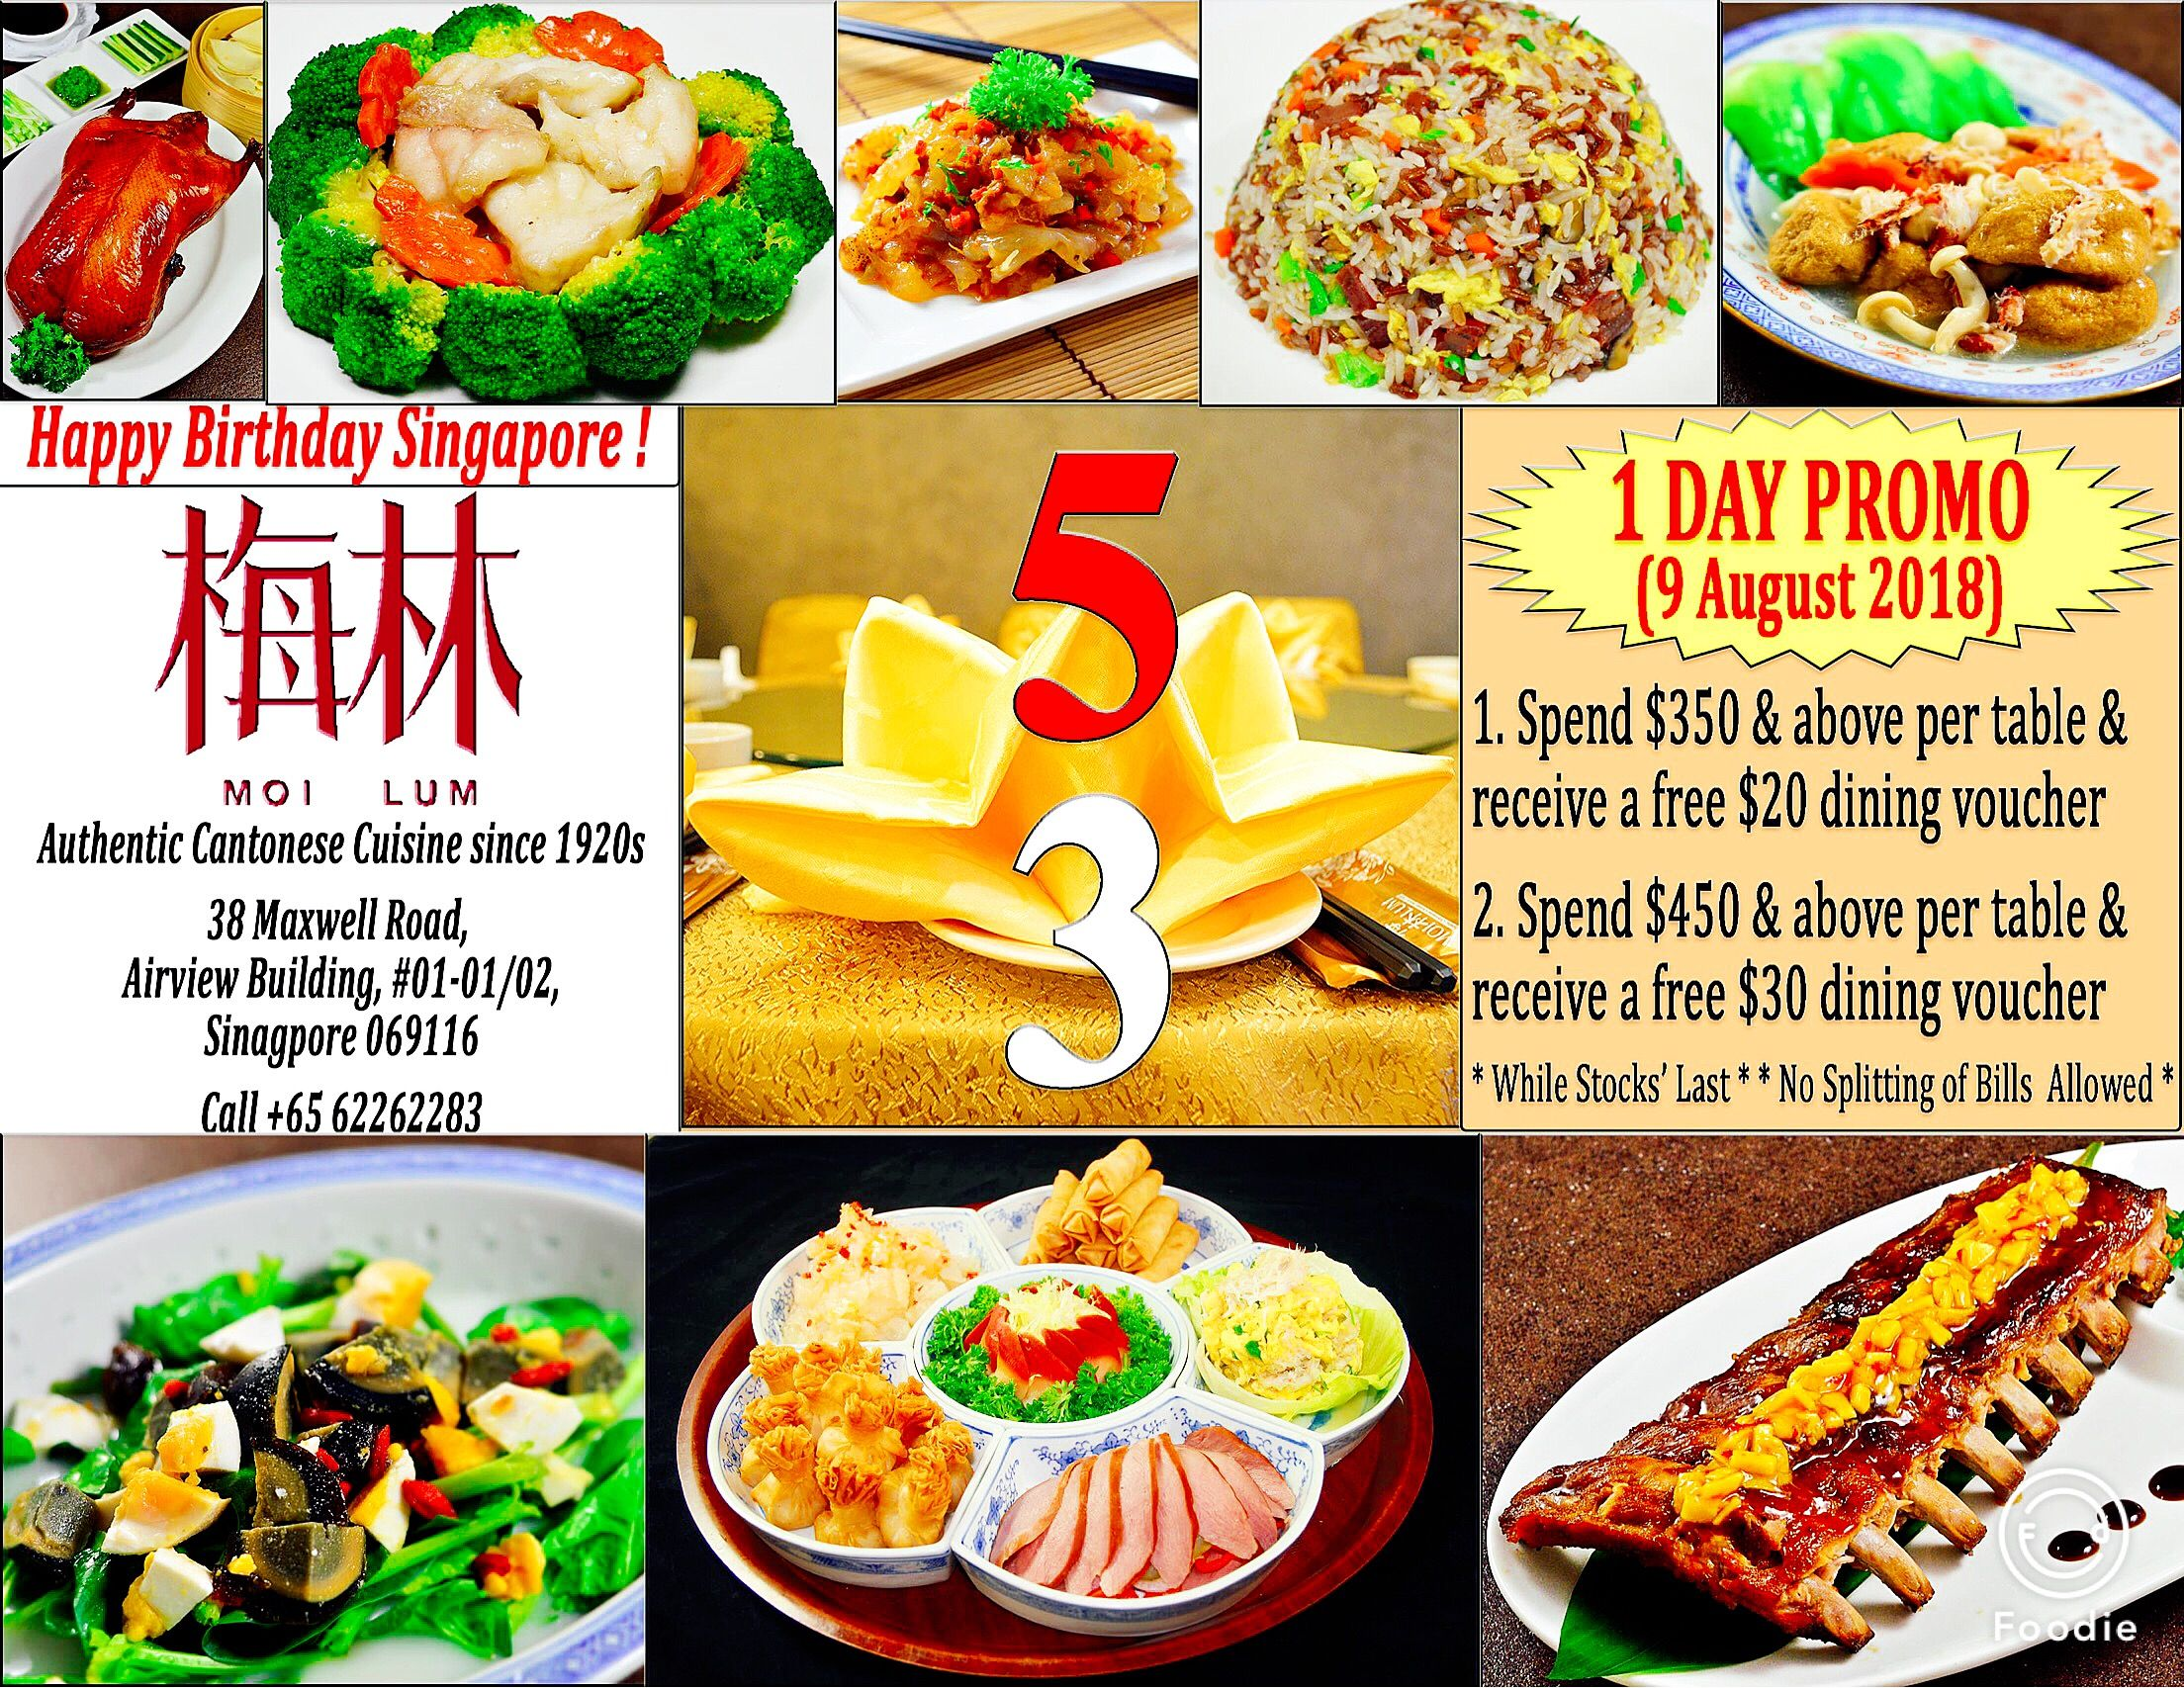 1 Day Promo National Day 2018 Cantonese Cuisine Cuisine National Day